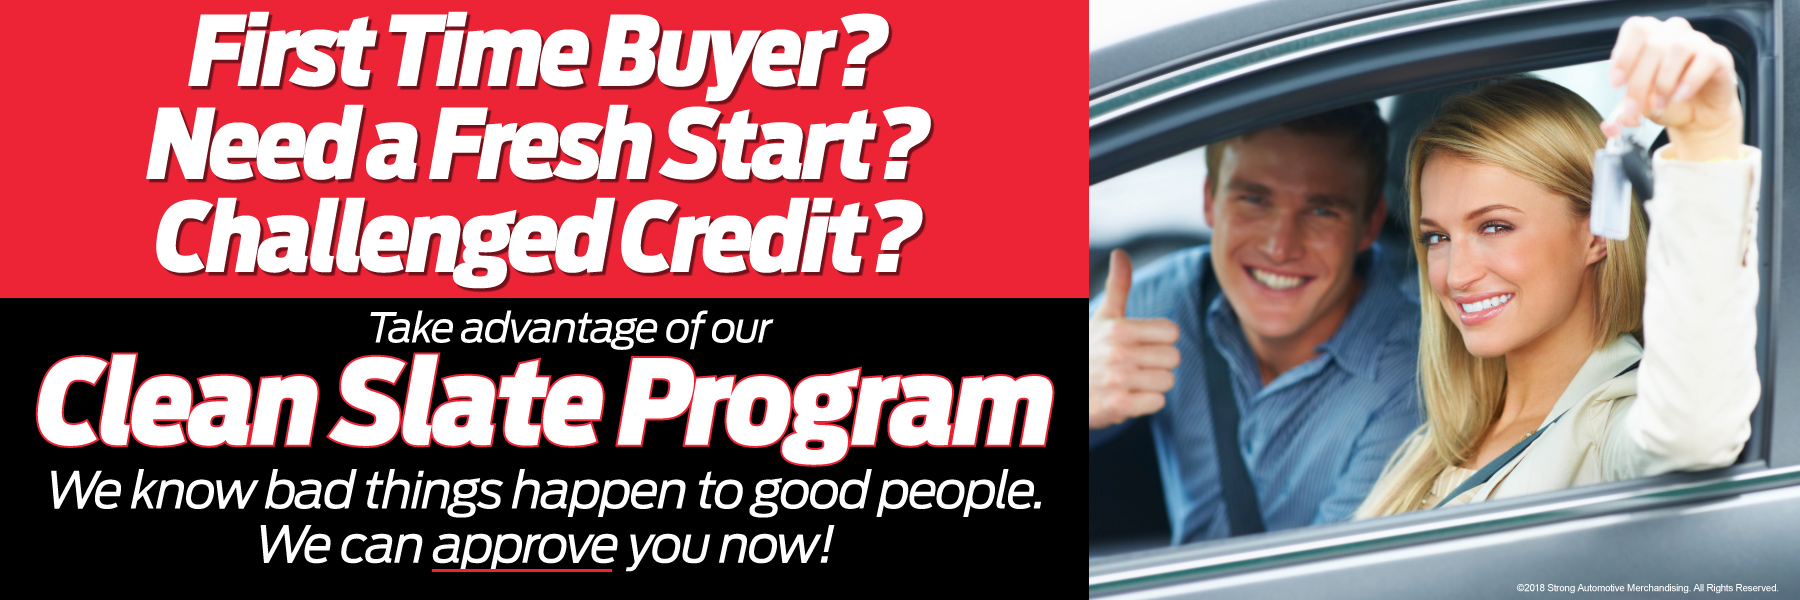 take advantage of our clean slate program